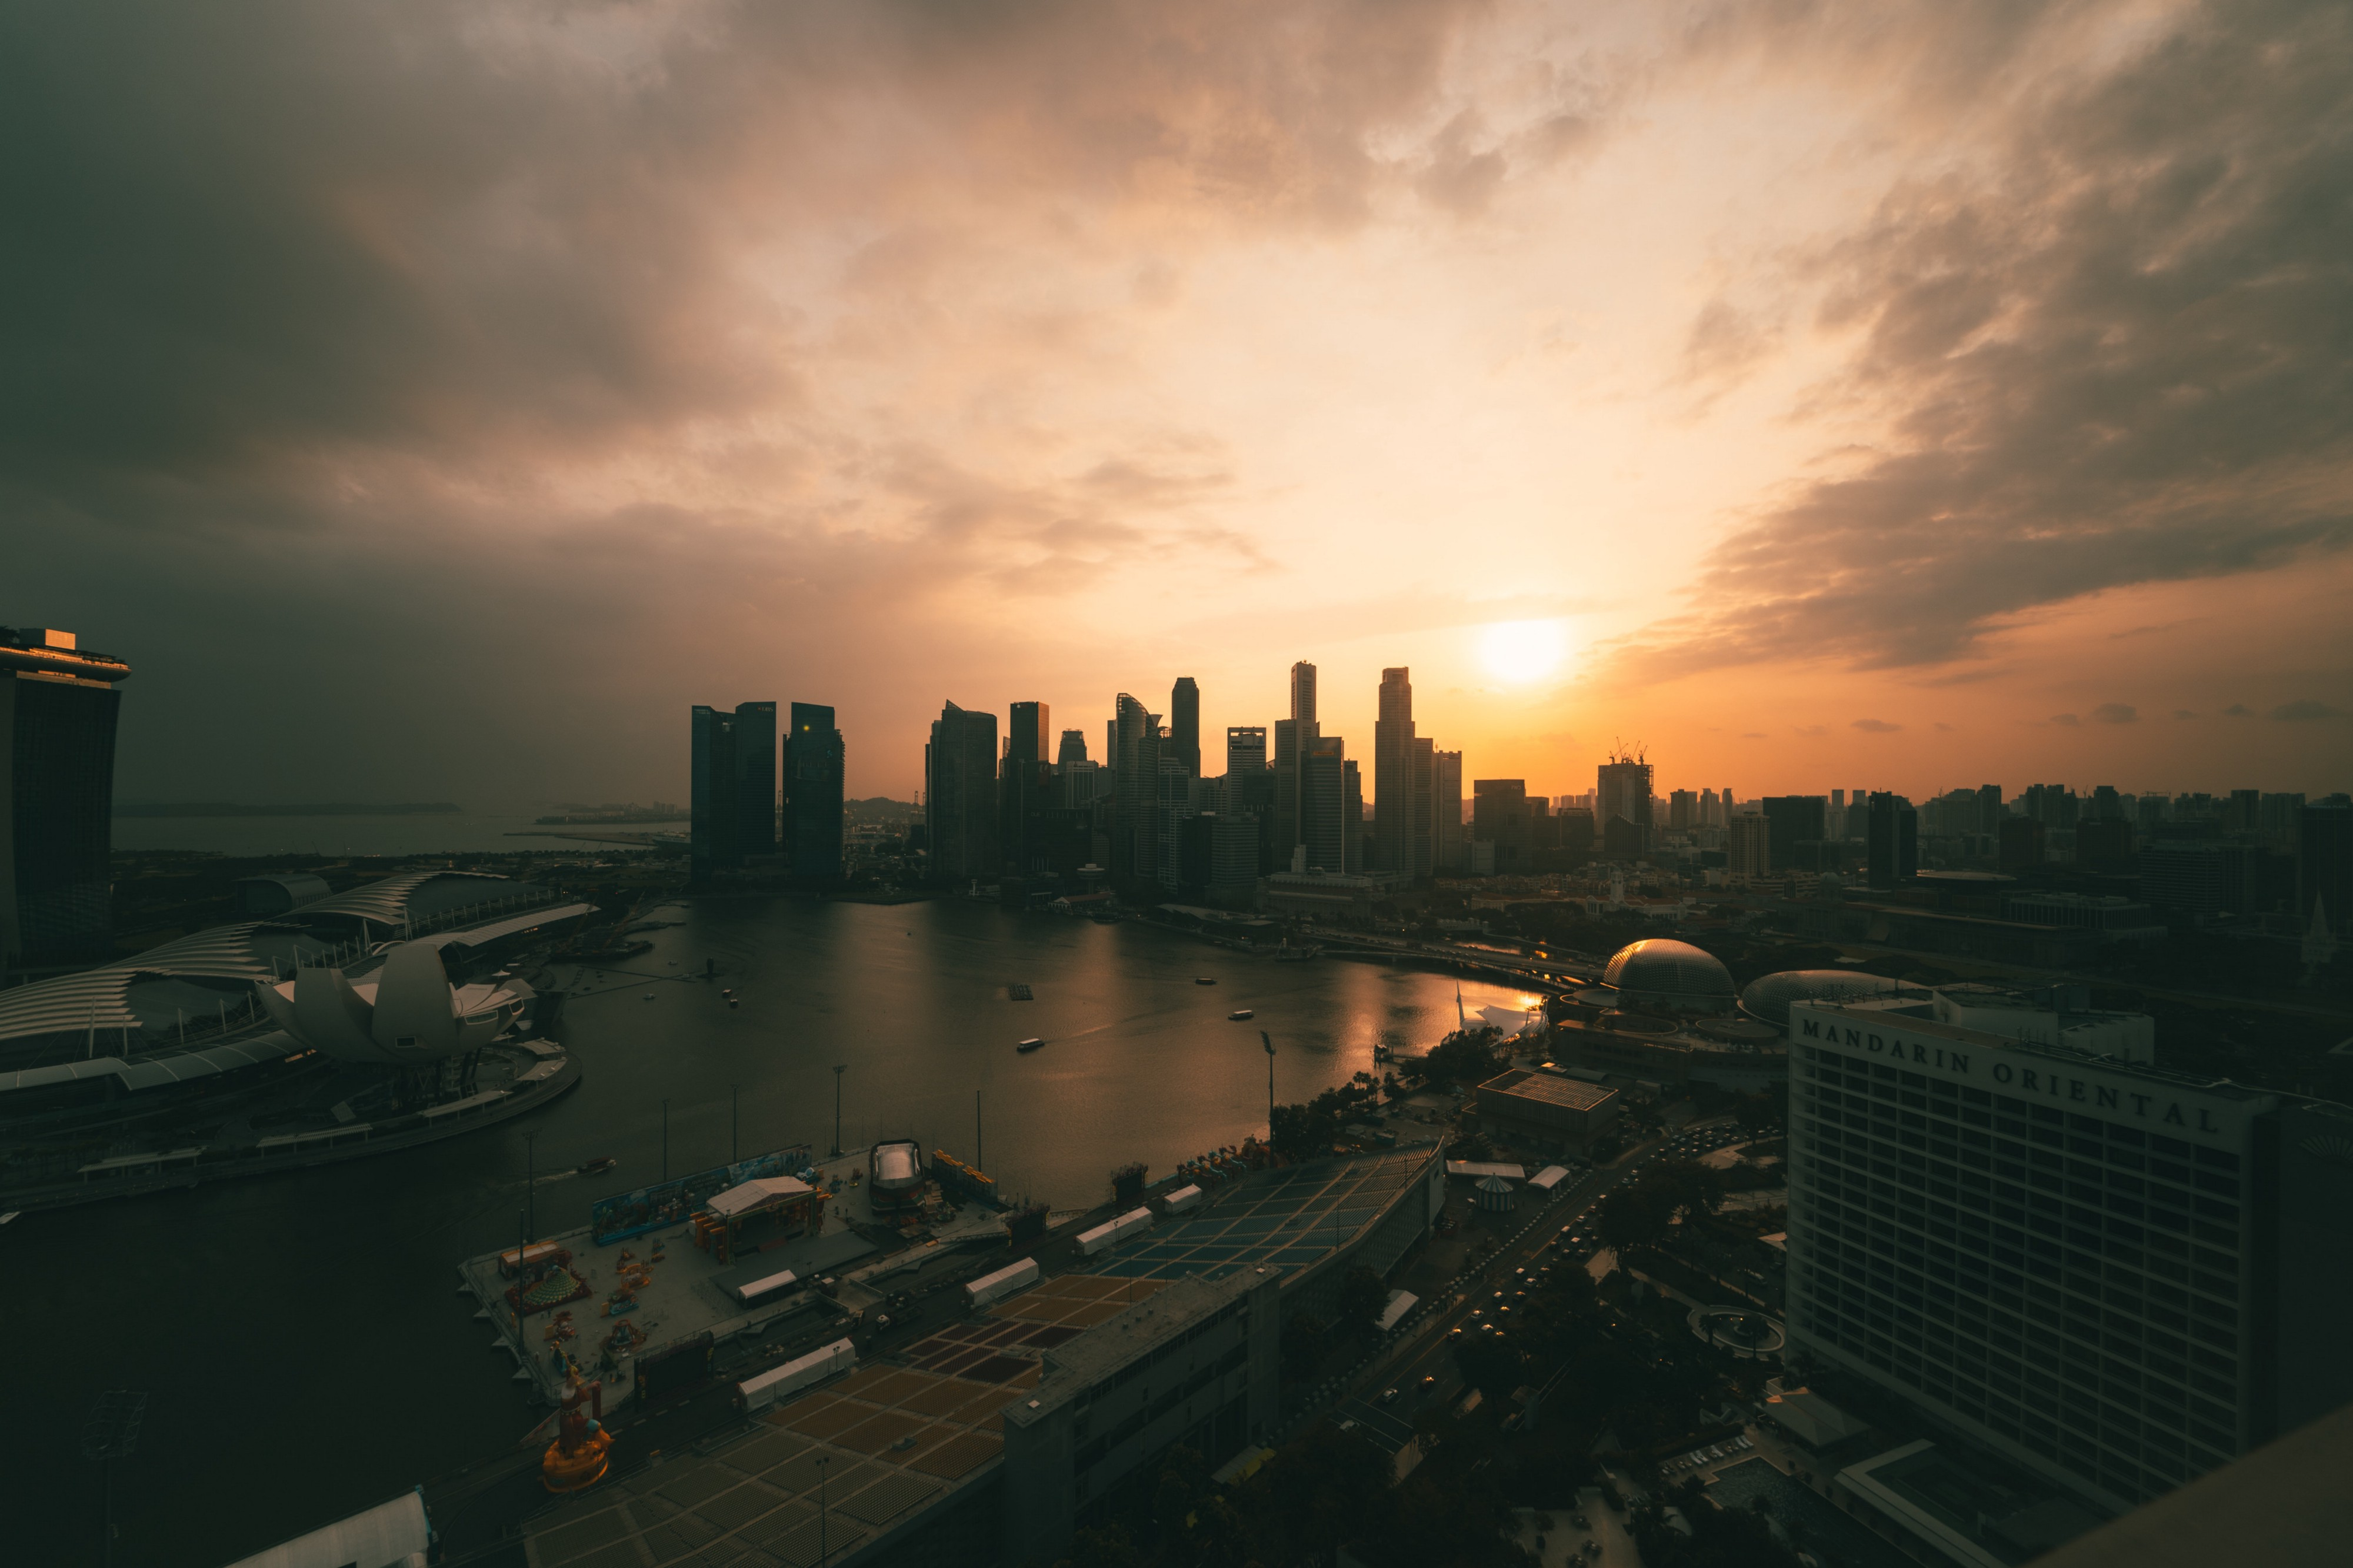 A glorious view of Singapore beneath a setting sun.